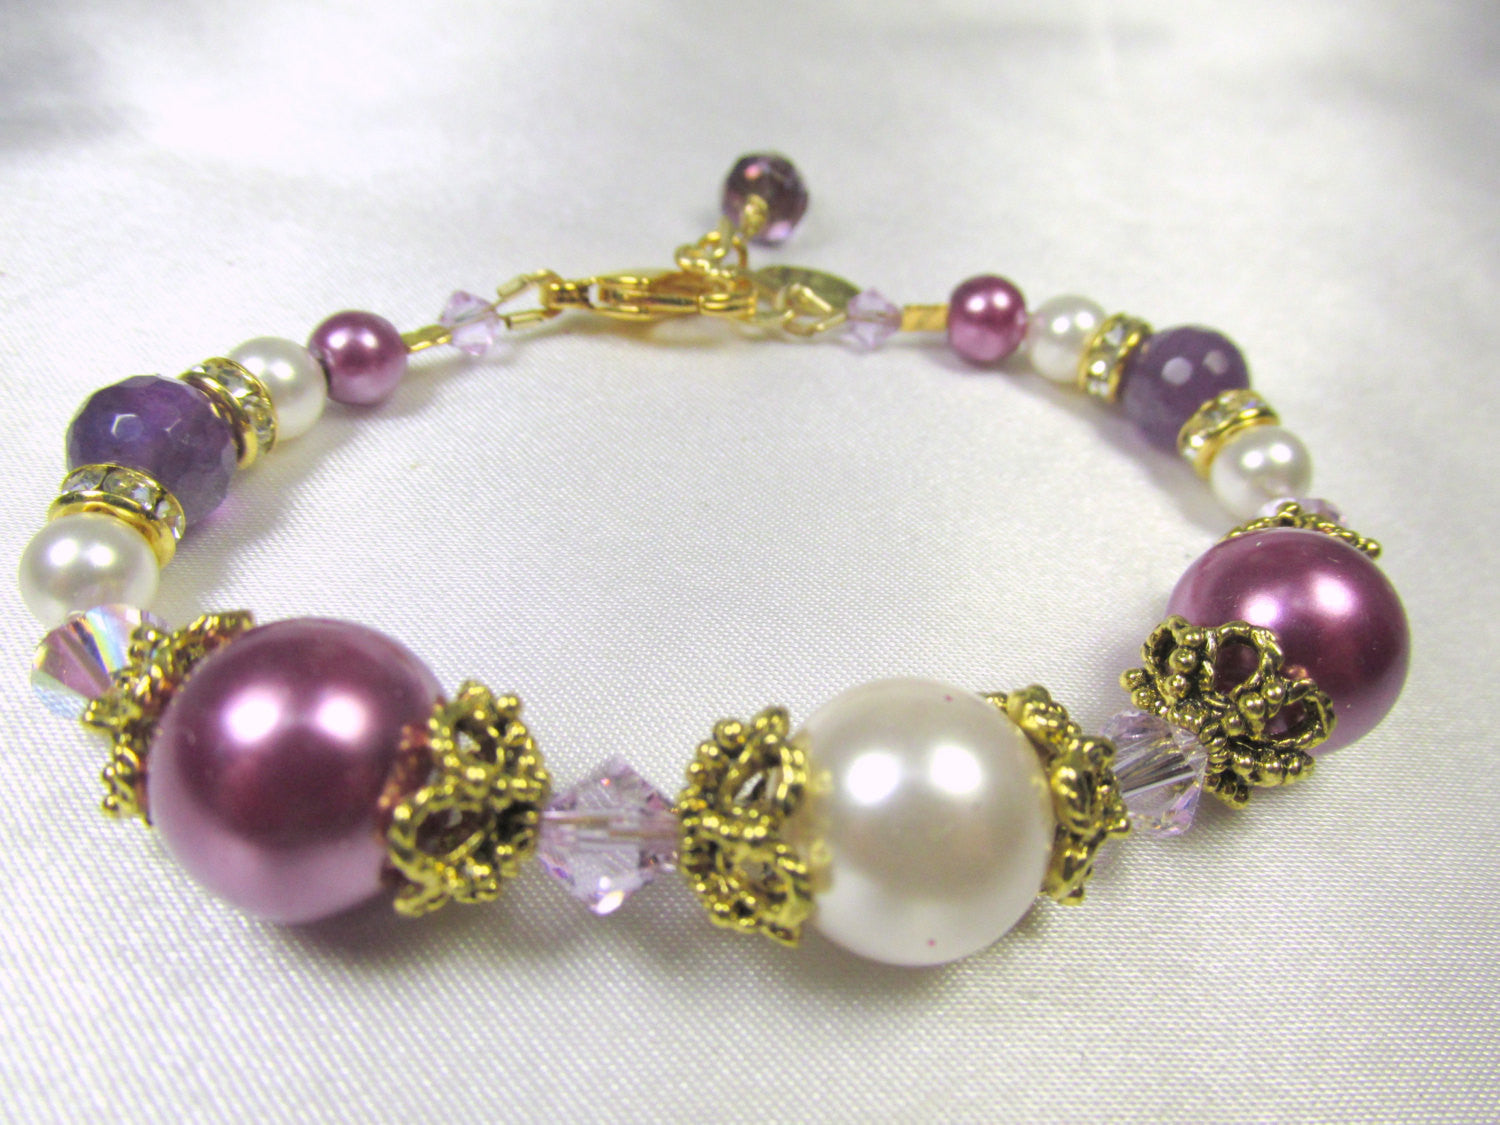 Radiant Orchid Purple Amethyst and White Swarovski Pearl and Crystal Bracelet in small size for bridal or bridesmaid - Odyssey Creations